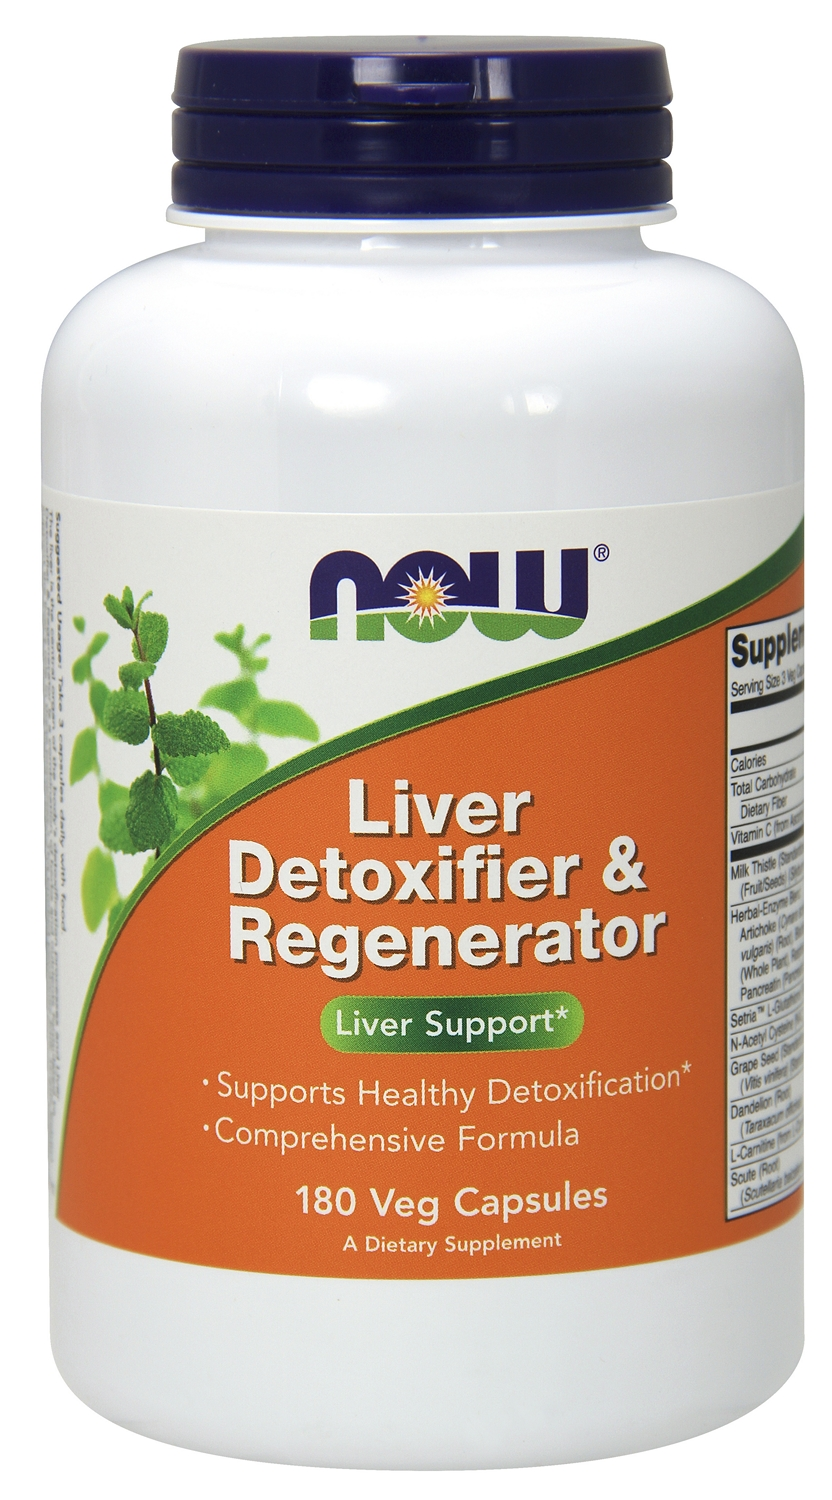 Liver Detoxifier & Regenerator 180 caps by NOW